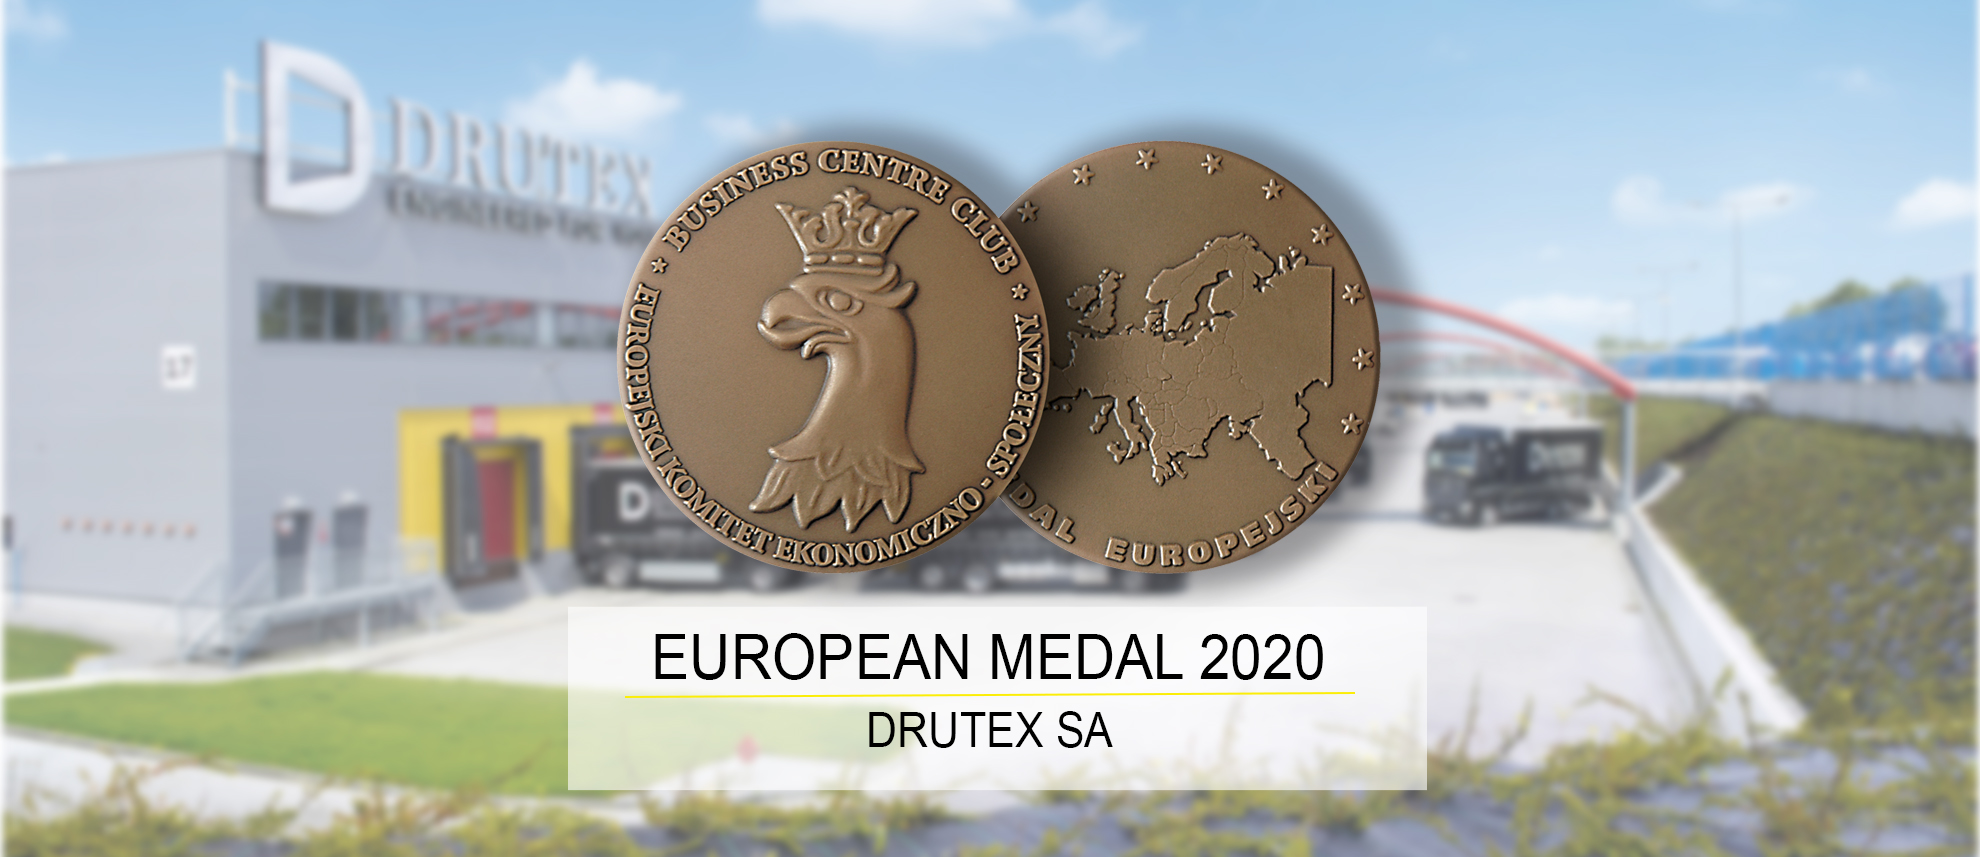 Drutex awarded the European Medal